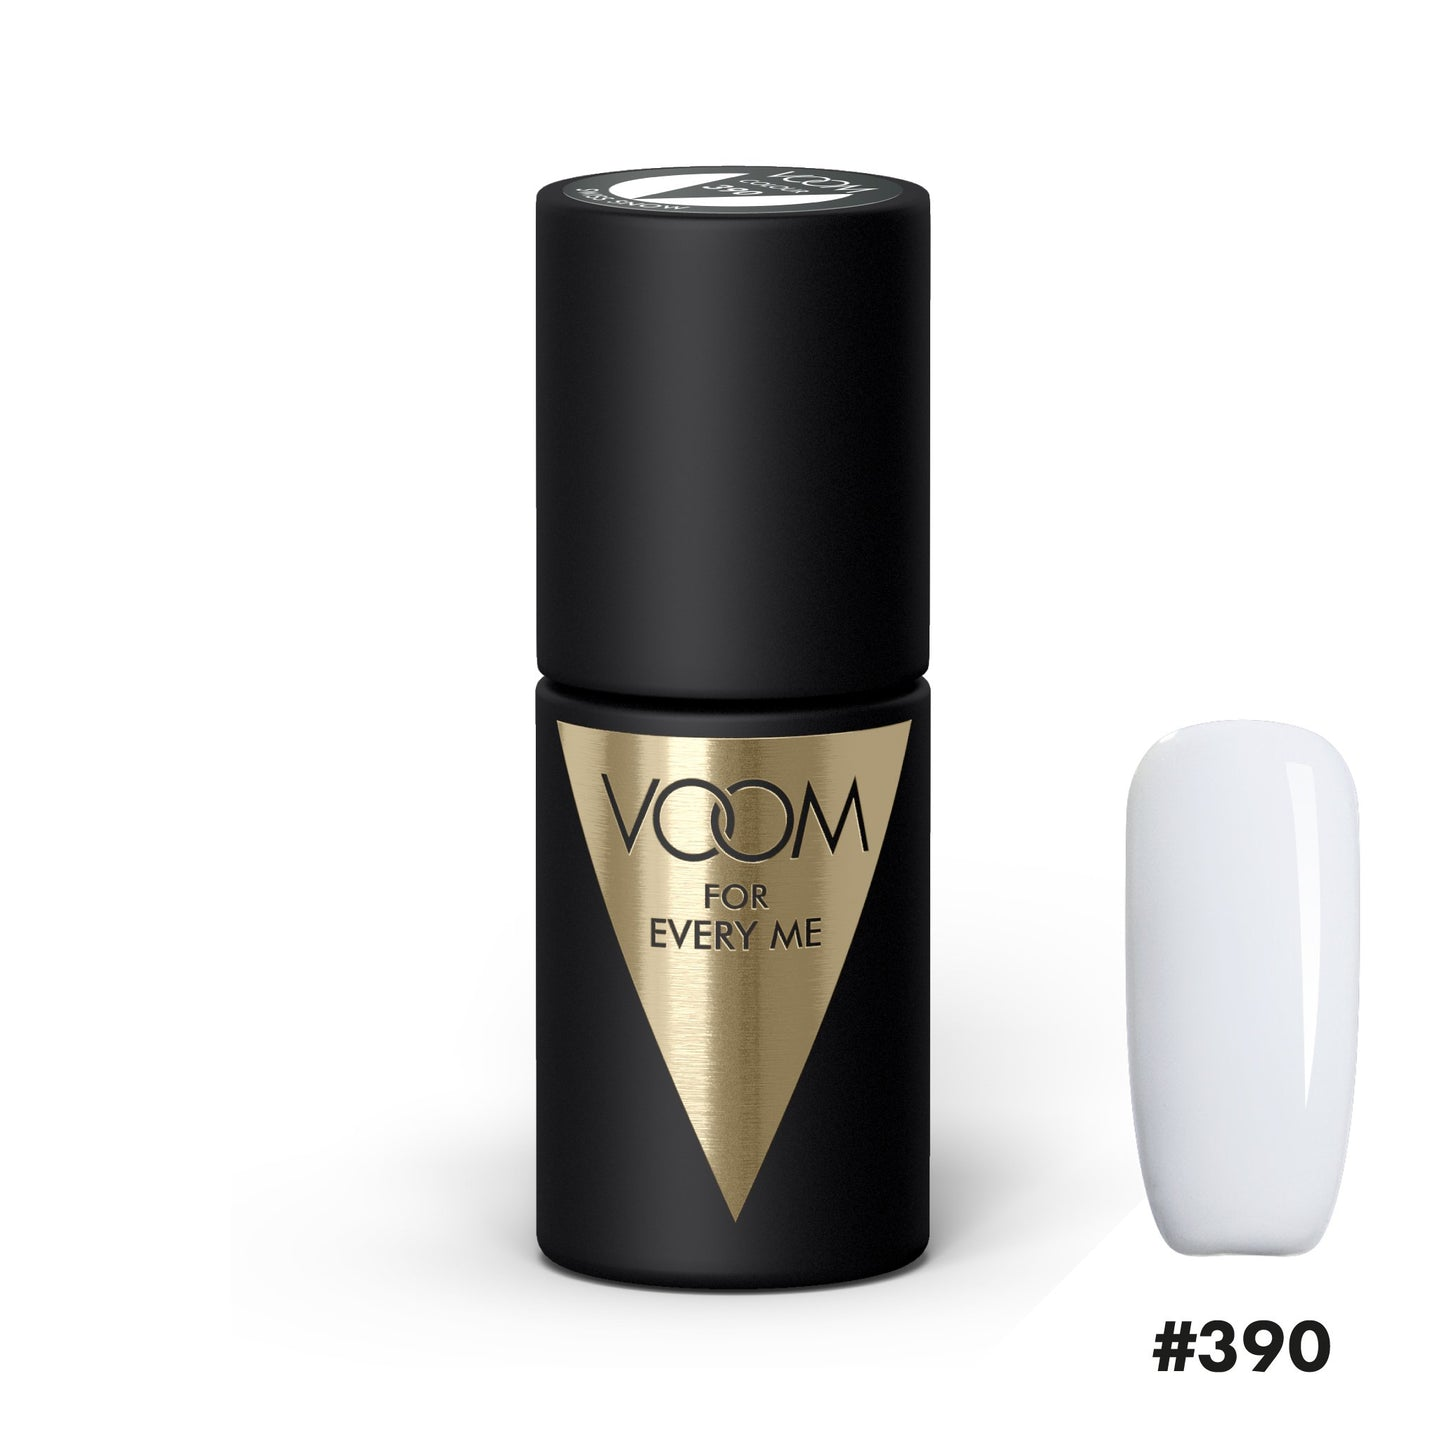 VOOM Soak Off Gel Polish #390 - Swiss Snow (.17 fl. oz. | 5 ml)